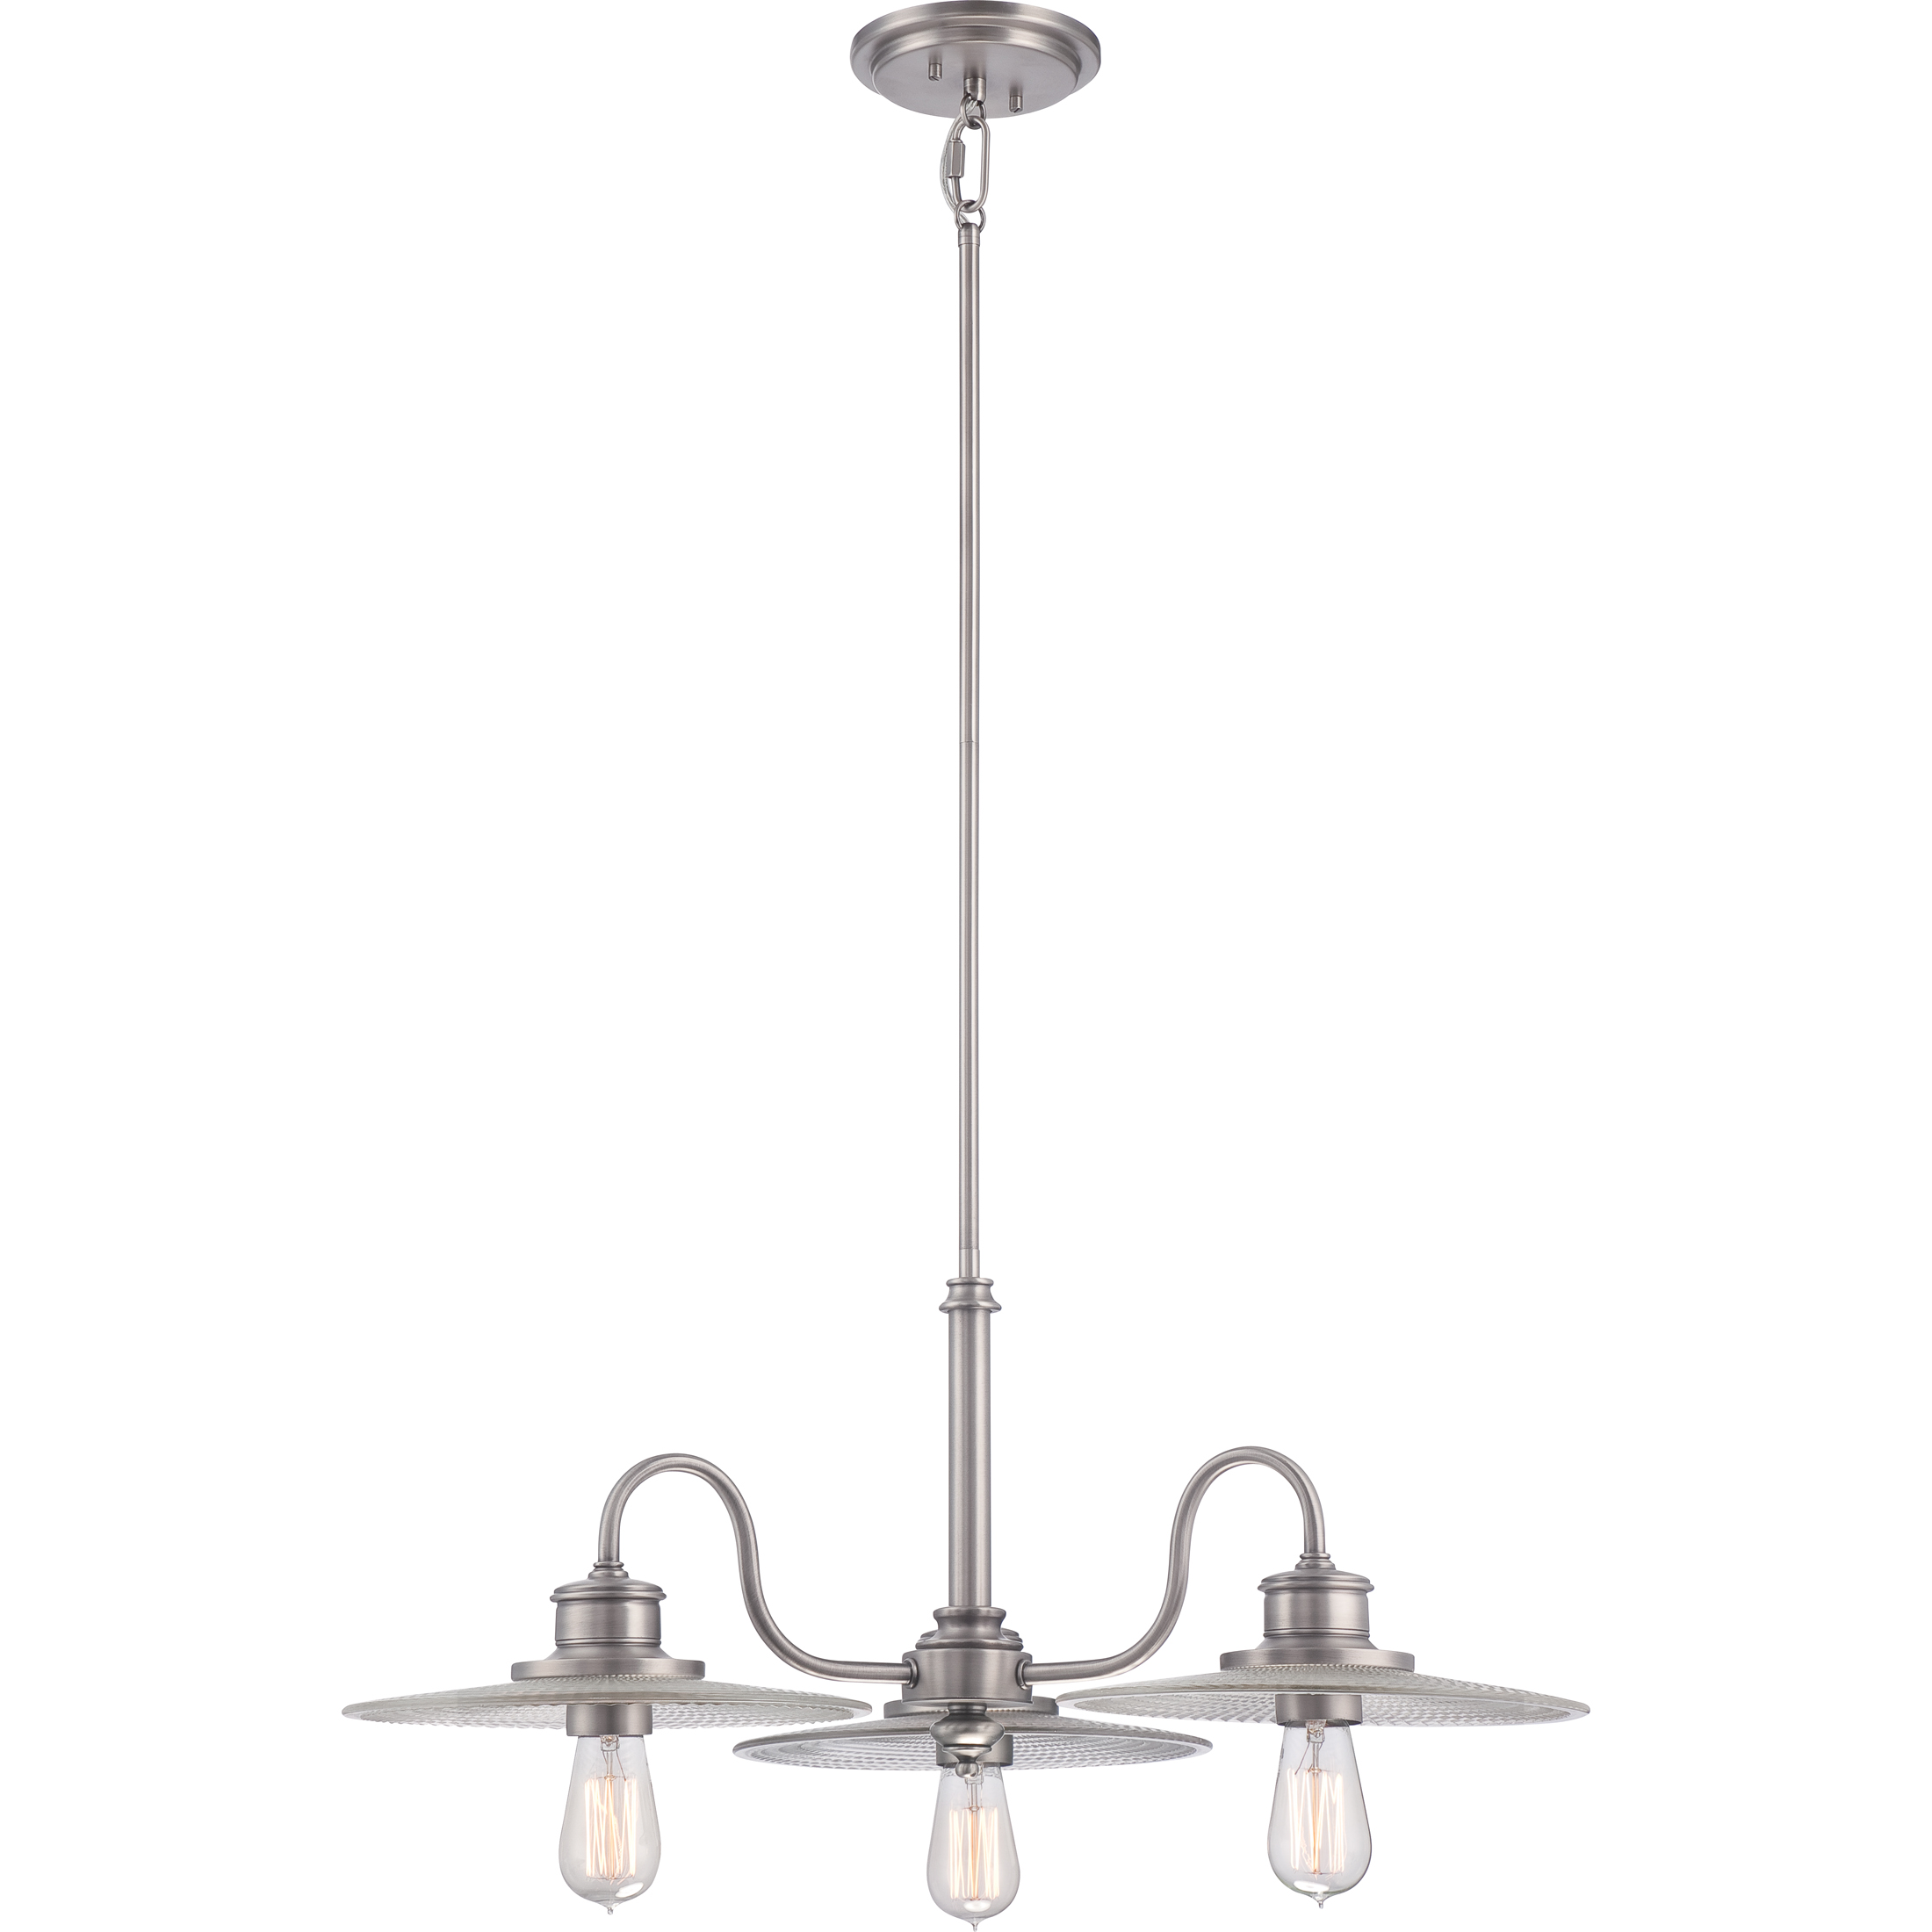 quoizel adm5103an admiral chandelier 30 w imperial bronze 3 light Corsica Ceiling Fans details about quoizel adm5103an admiral chandelier 30 w imperial bronze 3 light steel